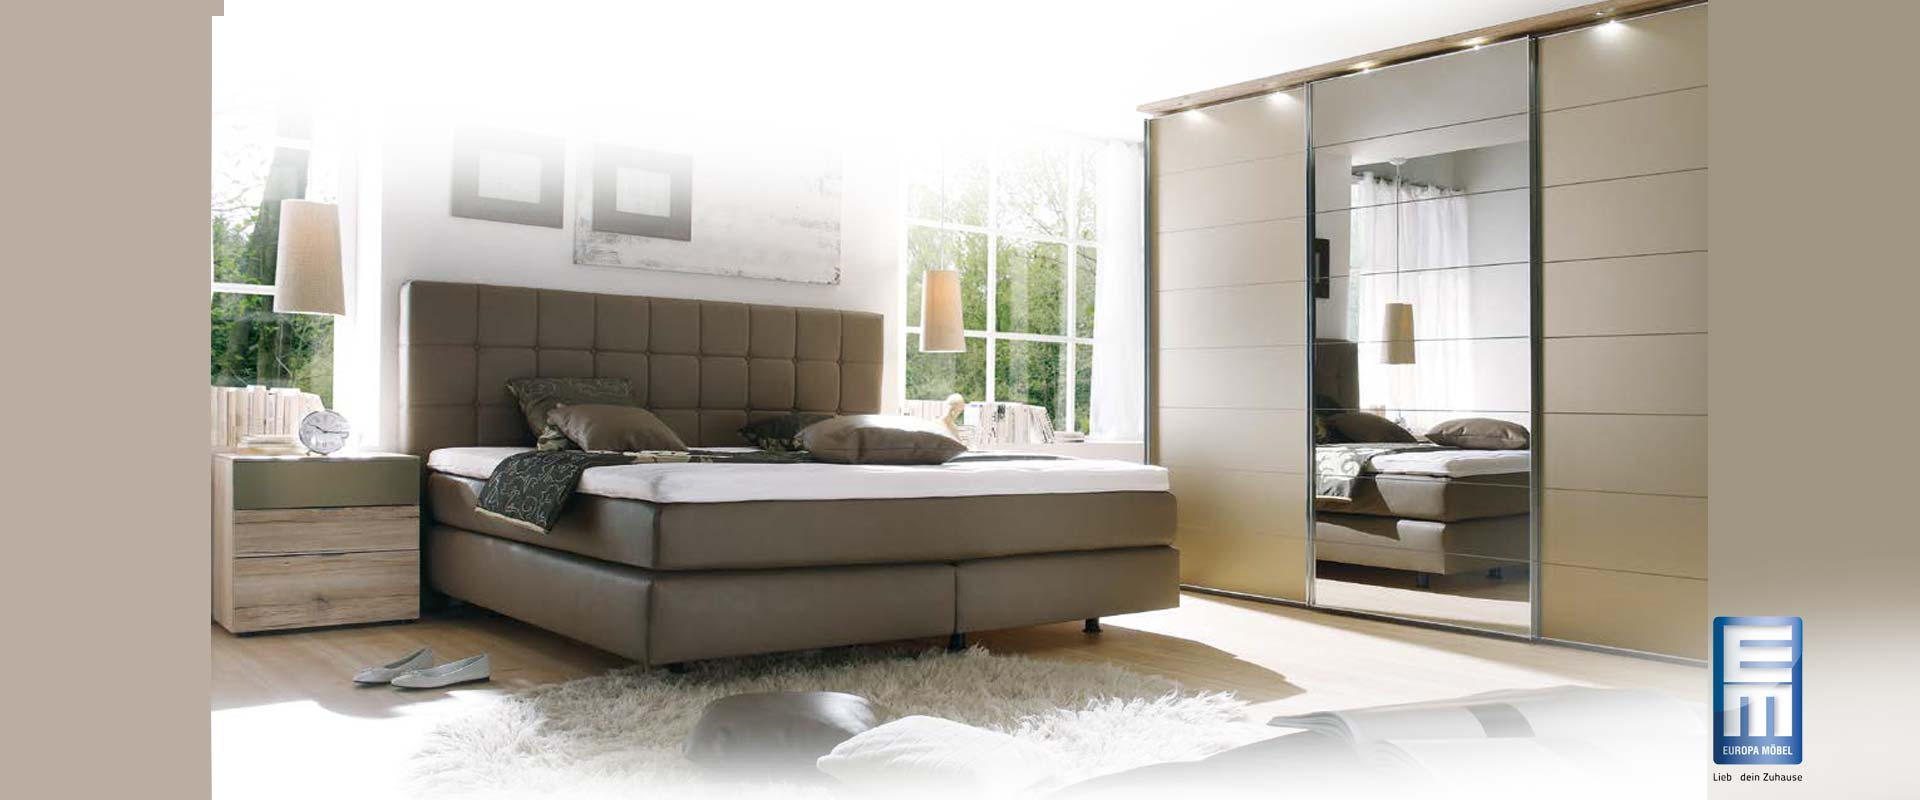 domeyer m bel berlin domeyer m bel und k chen. Black Bedroom Furniture Sets. Home Design Ideas